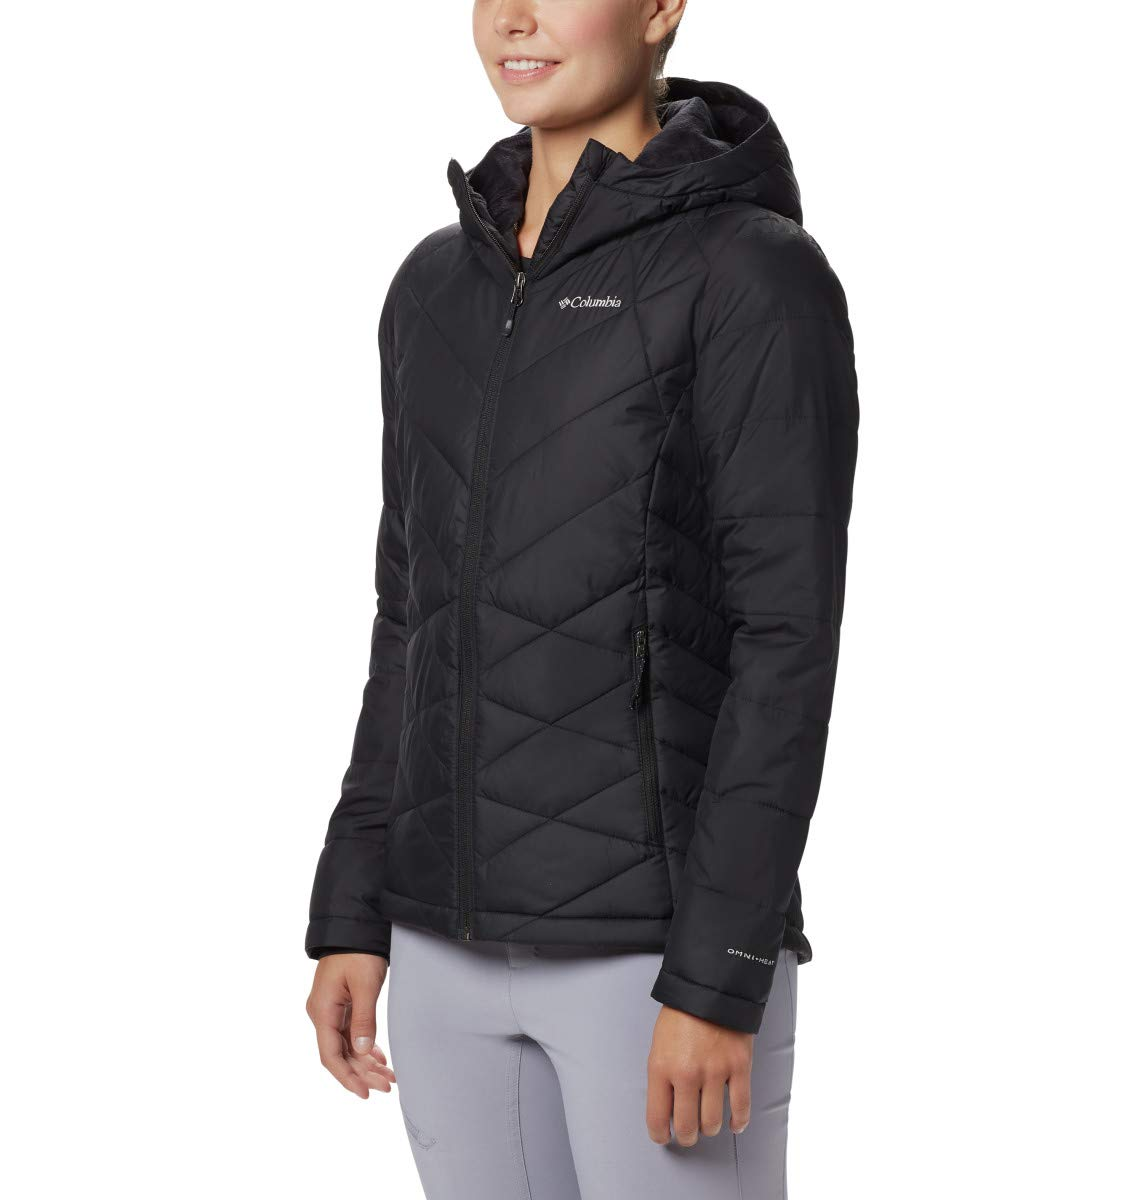 Columbia Women's Heavenly Hooded Jacket, Black, 3X by Columbia